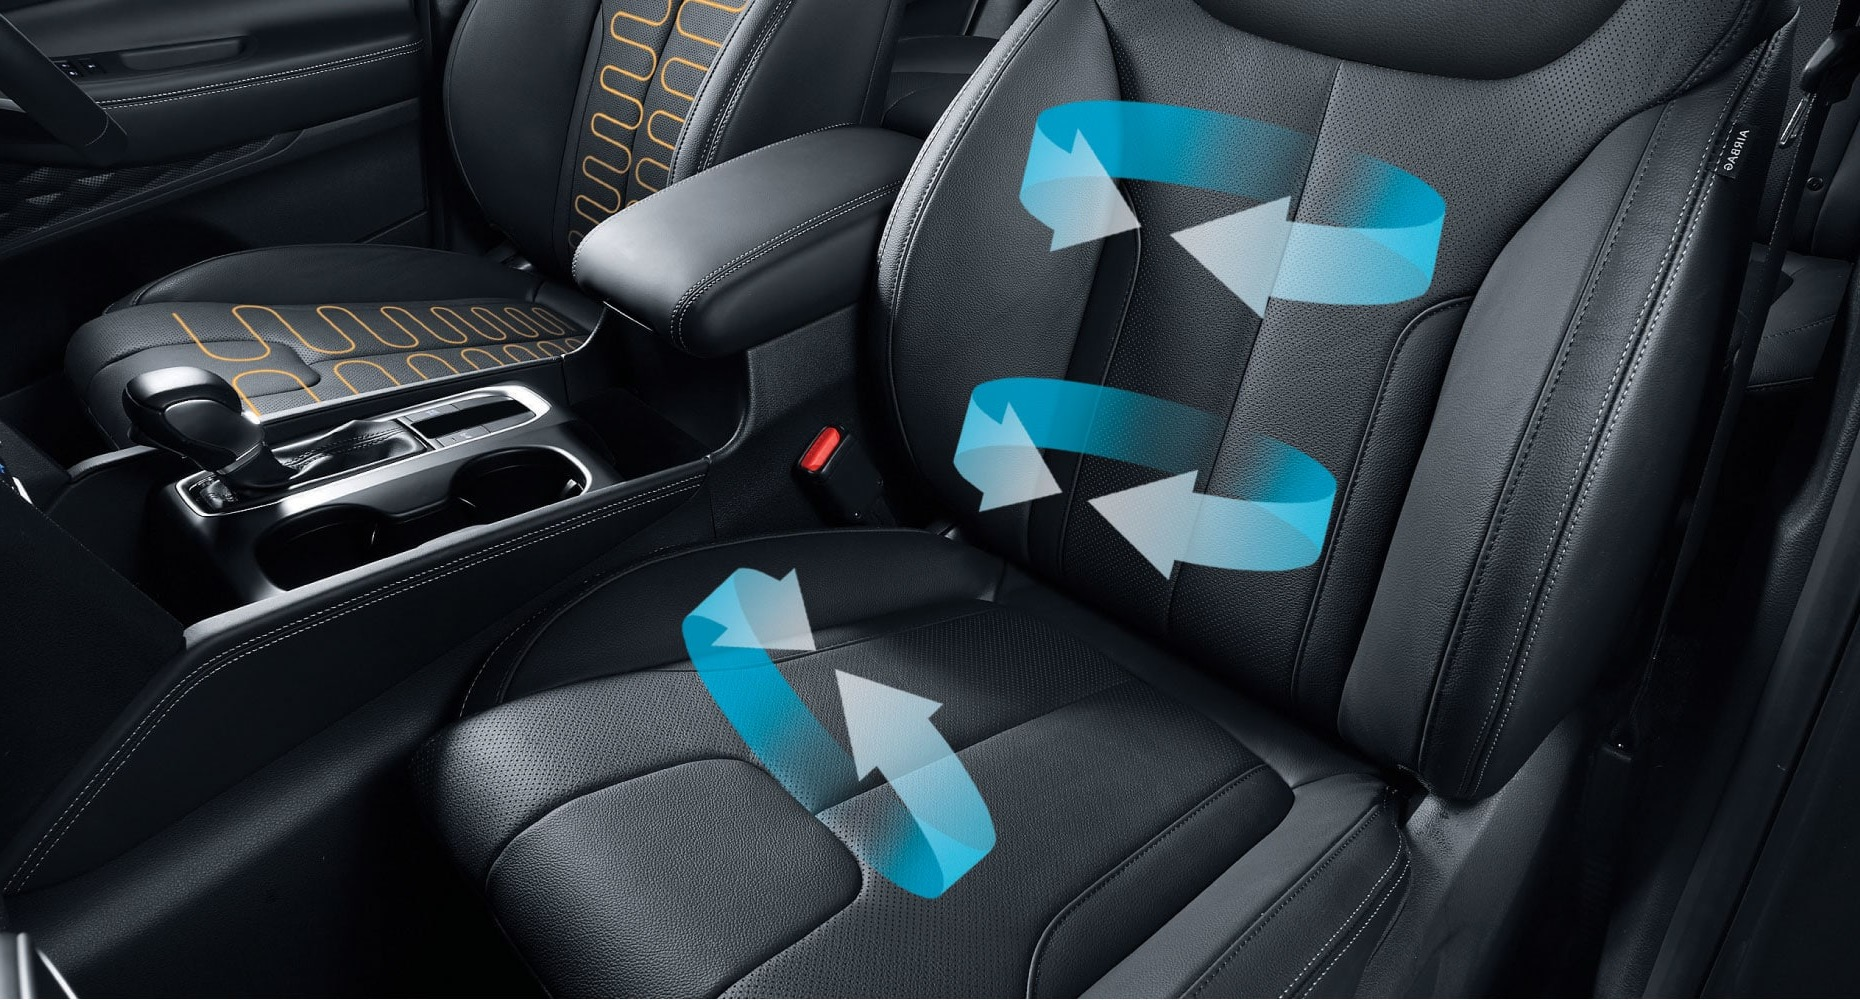 Heating & ventilation-equipped seats